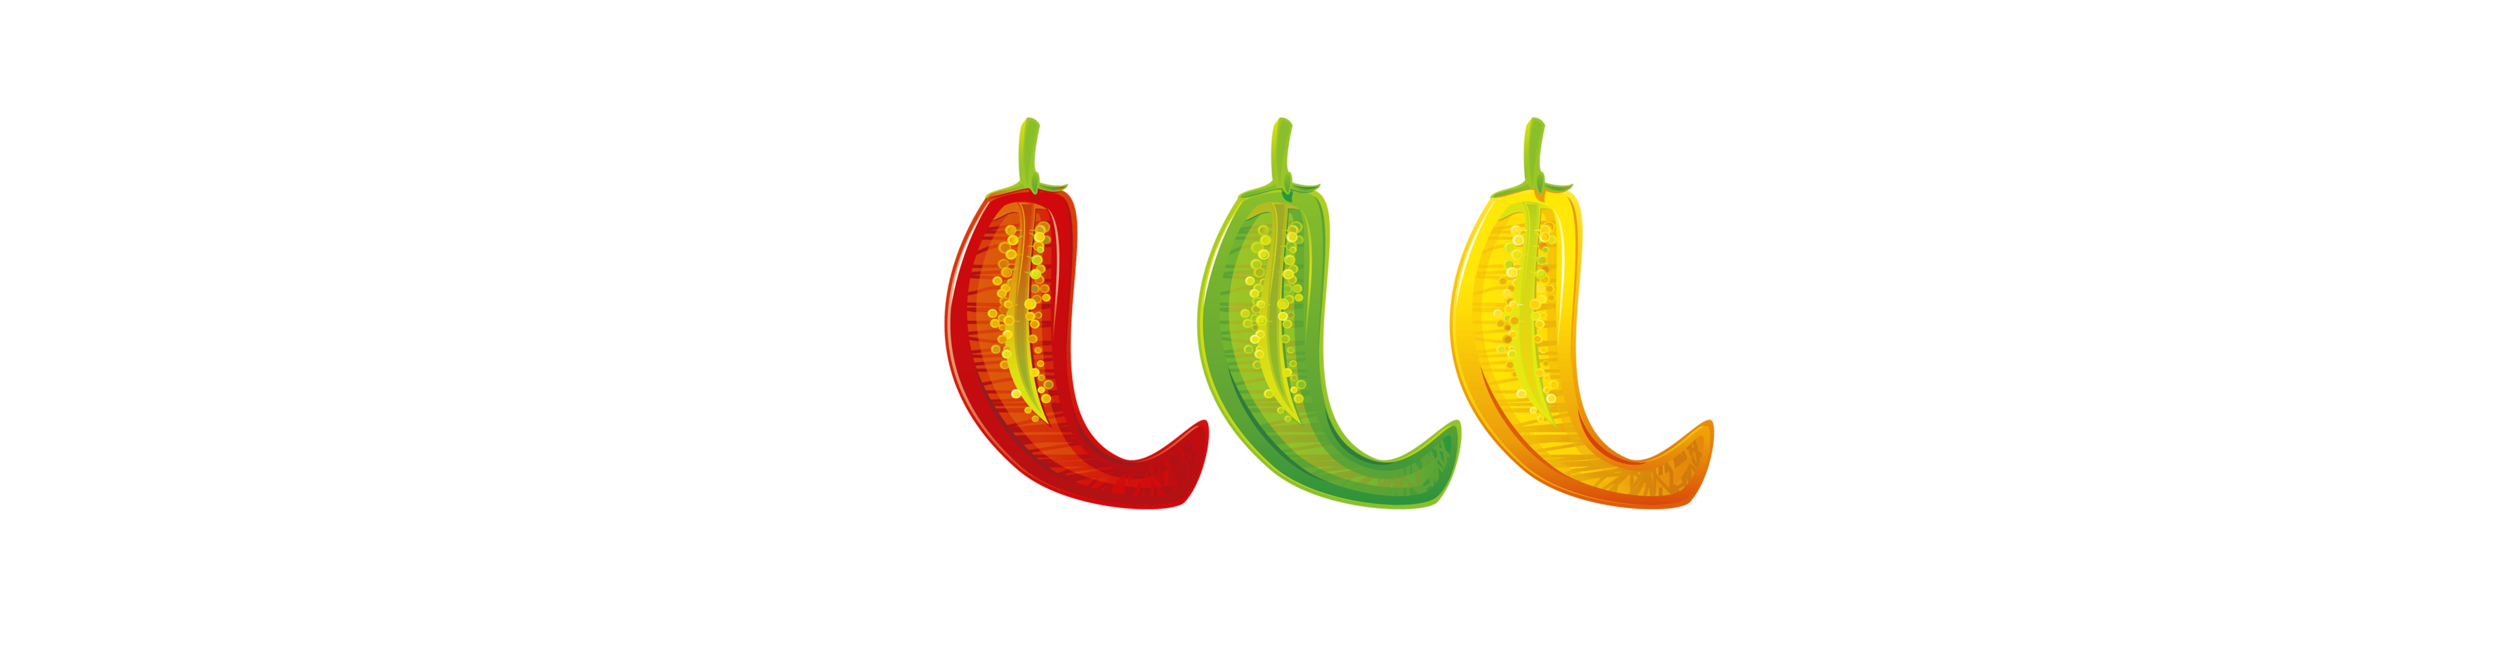 Chiles2.png